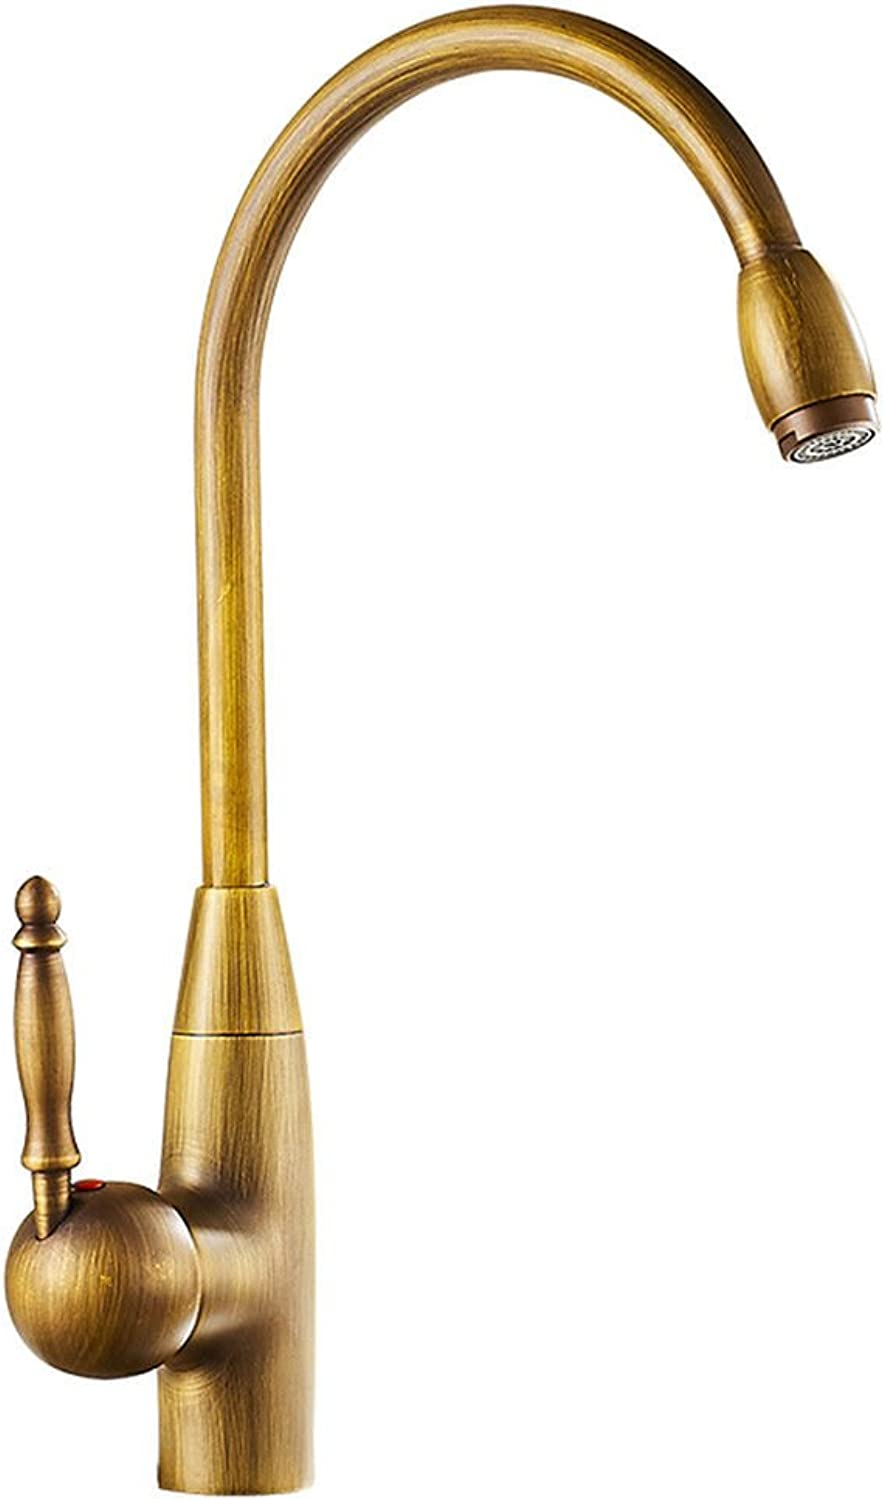 Commercial Single Lever Pull Down Kitchen Sink Faucet Brass Constructed Polished Full Copper Kitchen Hot and Cold Faucet Antique Retro Faucet Can Be redated